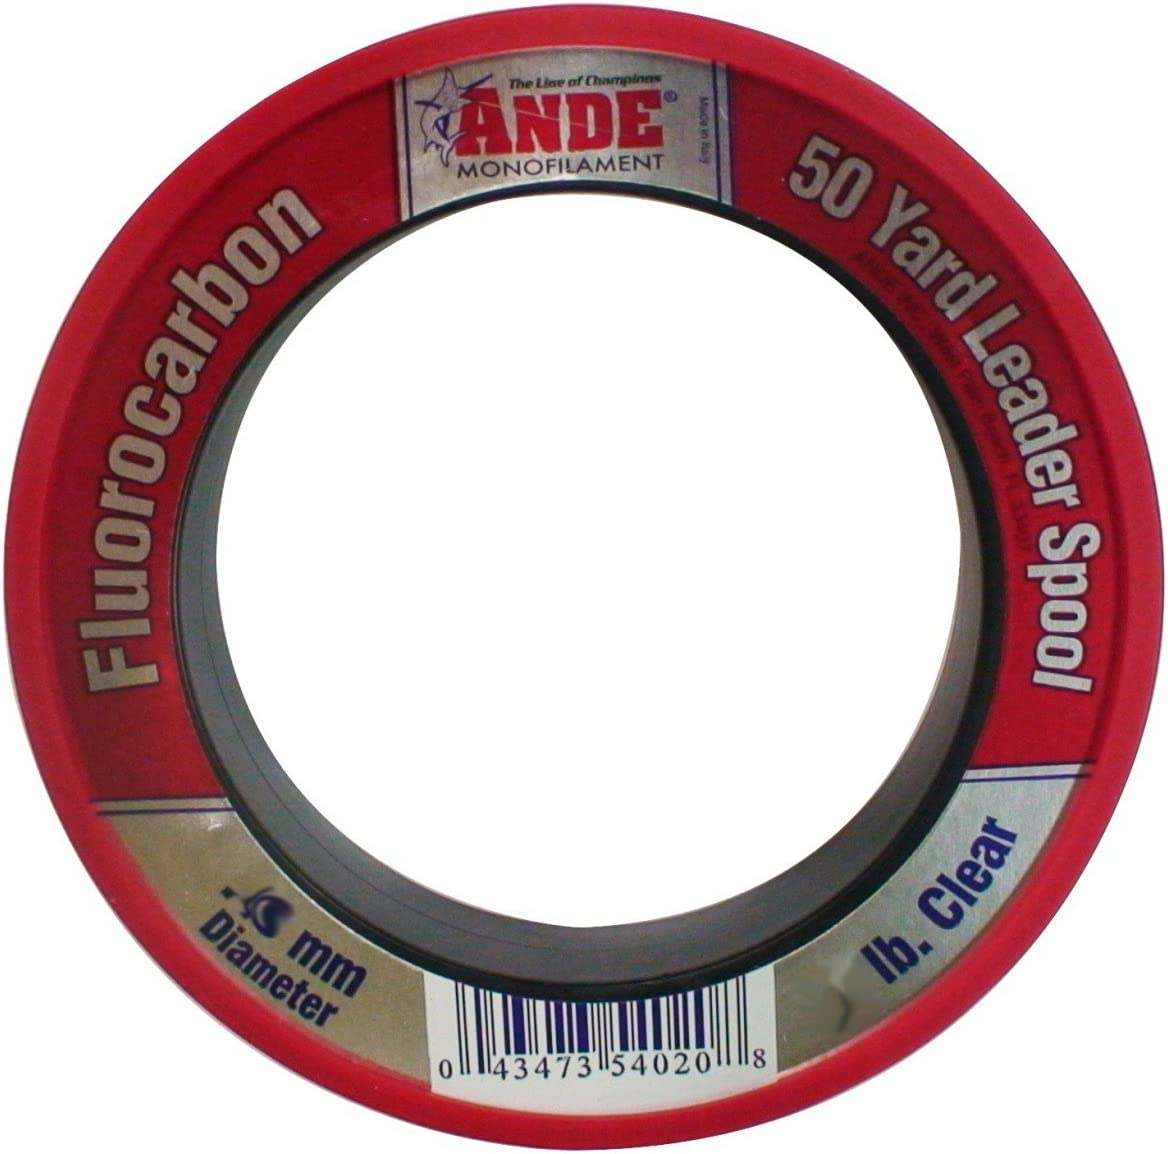 ANDE FPW-50-40 Fluorocarbon Leader Material, 50-Yard Spool, 40-Pound Test, Pink Finish